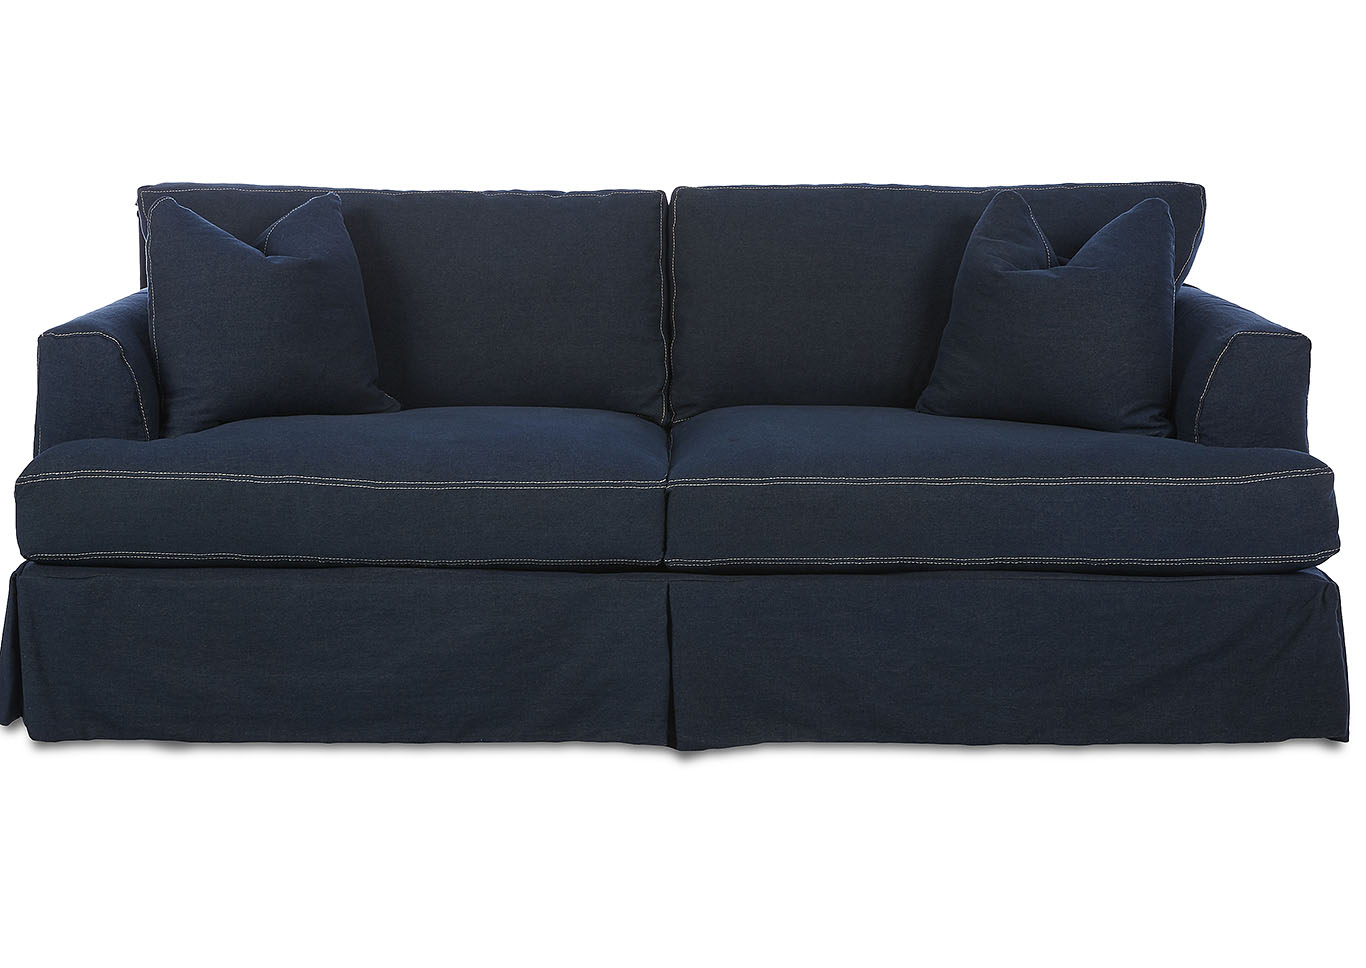 Bentley Classic Melrose Stationary Fabric Sofa,Klaussner Home Furnishings